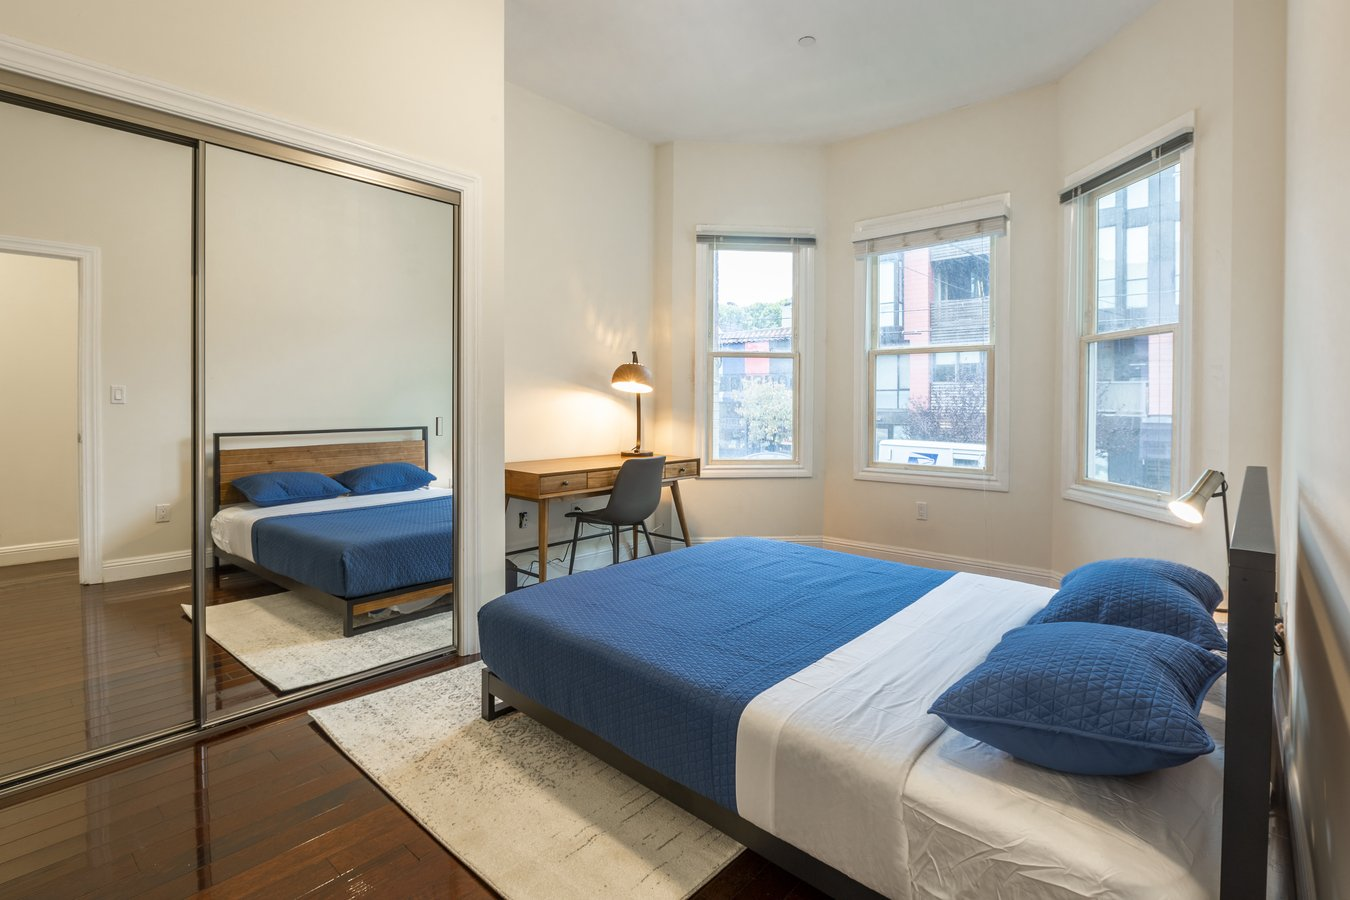 1 Bedroom 1 Bathroom House for rent at 14Th St & Guerrero St Coliving in San Francisco, CA